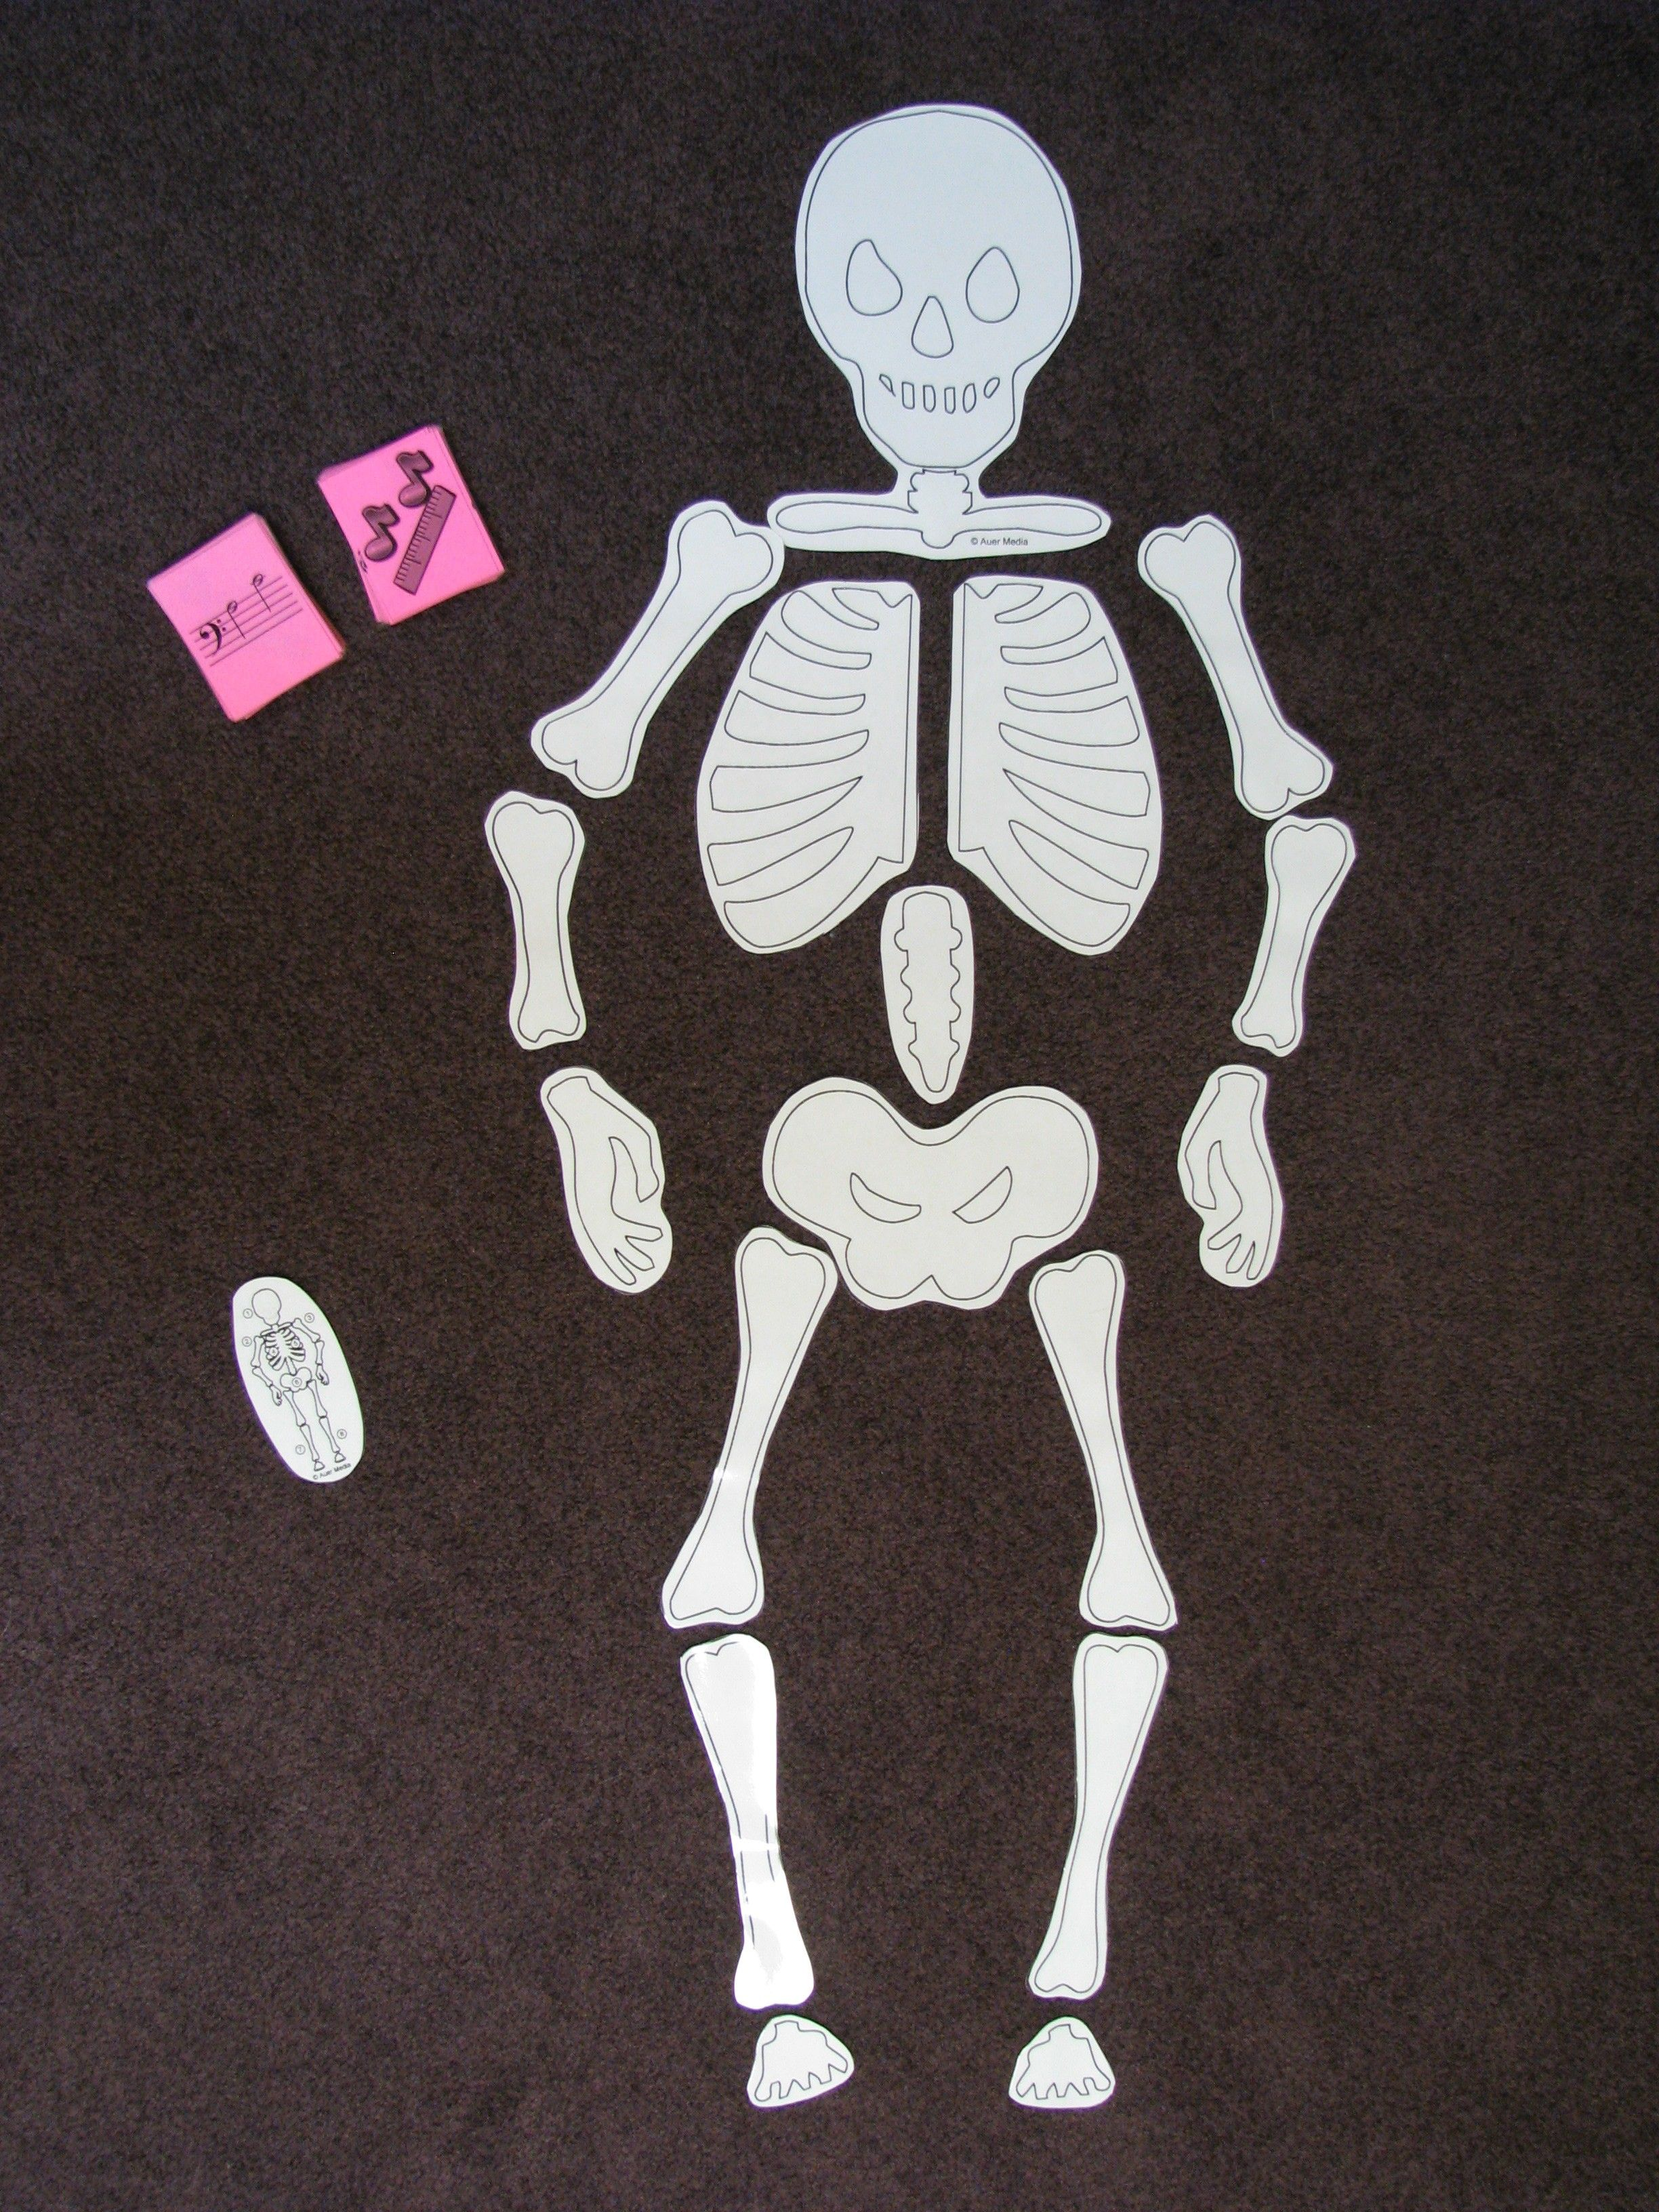 Build A Skeleton Game To Review Theory Concepts Perhaps Adapt To Build A Turkey Reviewing Note